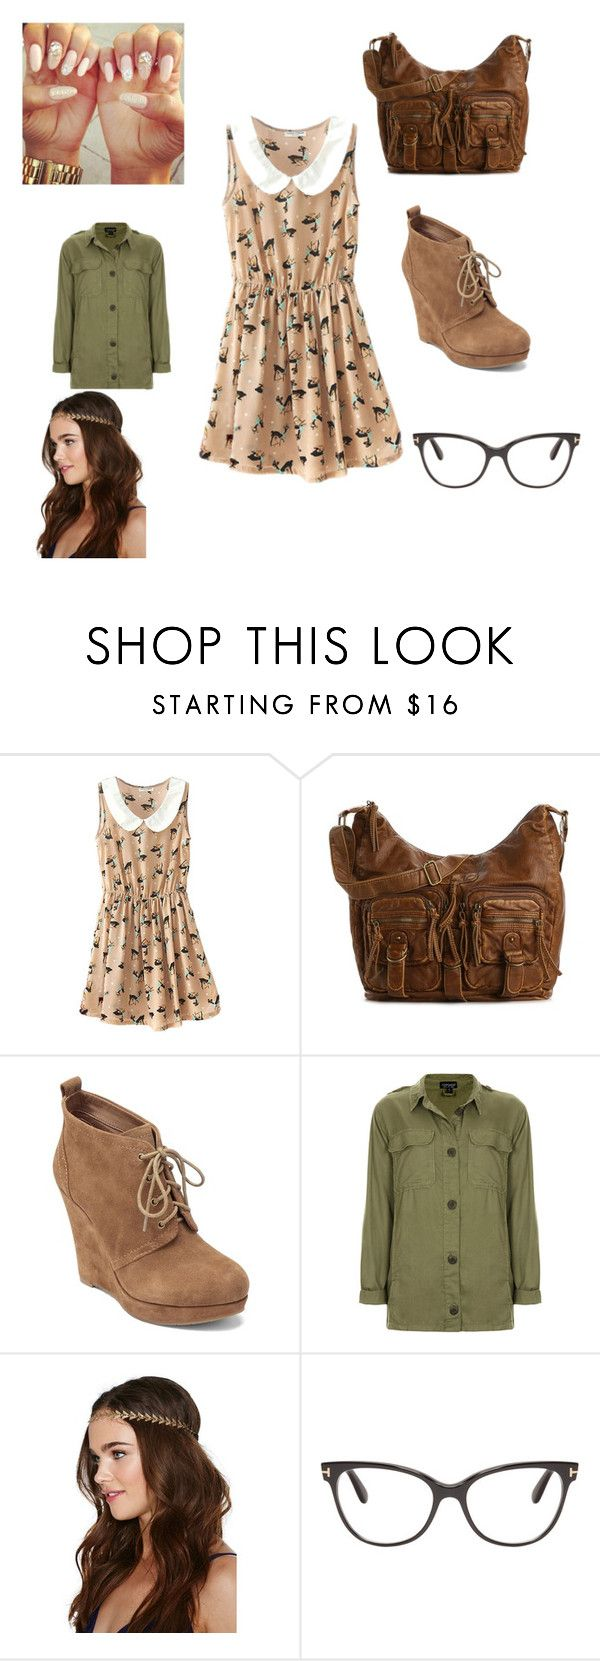 """""""Summa outfit #4"""" by dreamgurl-846 on Polyvore featuring Mix No. 6, Jessica Simpson, Topshop, Berry and Tom Ford"""